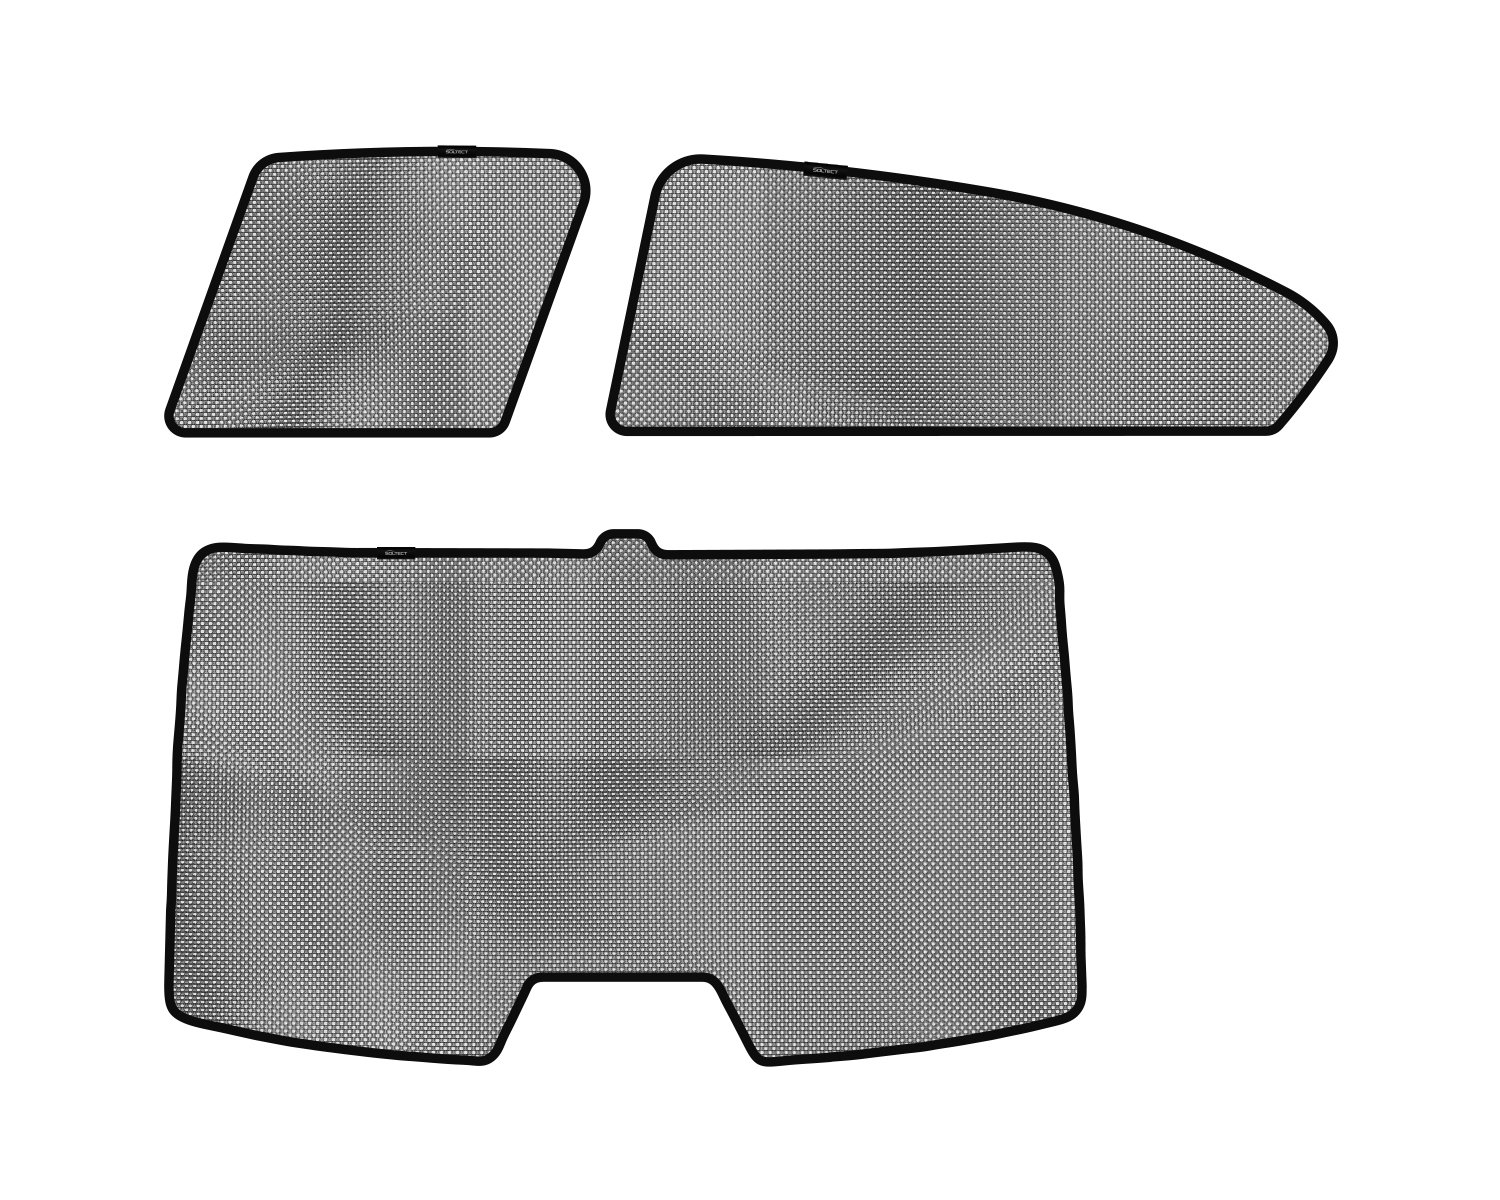 3D MAXpider S1HD0411 Side Windows Custom Fit Sun Shade (3D Soltect for Select Honda Civic Sedan Models)